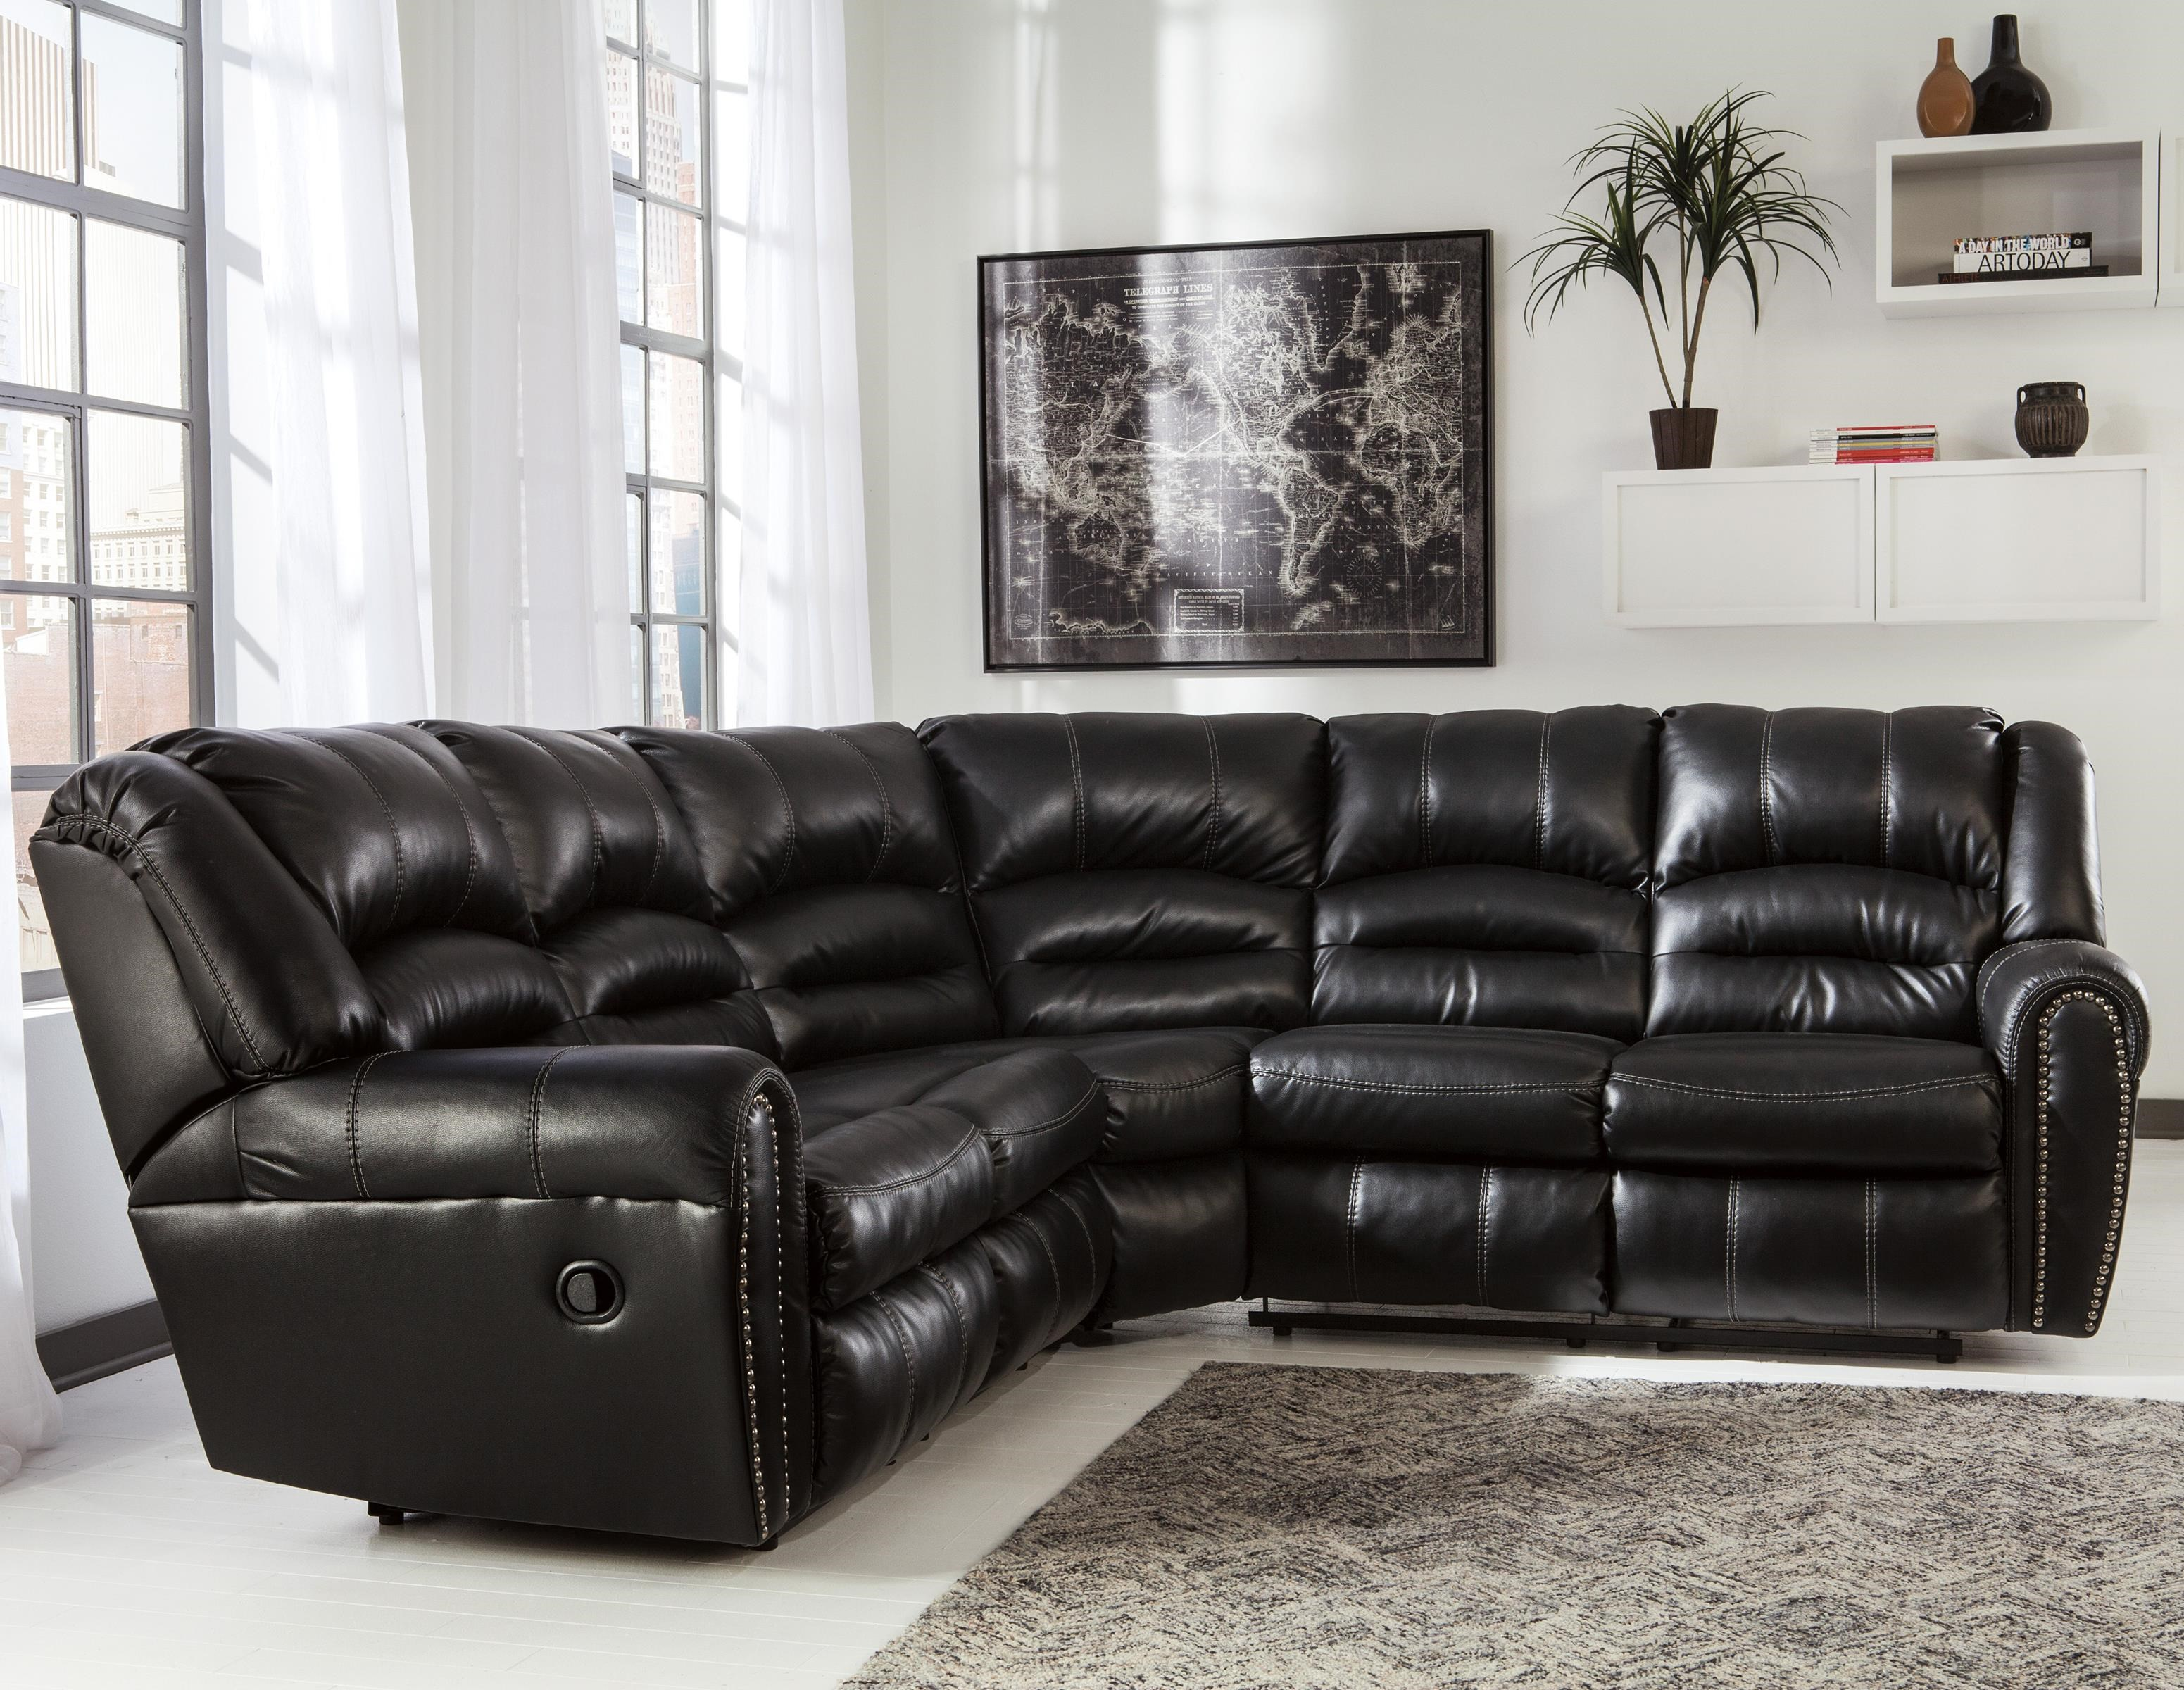 Signature Design by Ashley Manzanola Reclining Sectional with Nailhead Trim - Becker Furniture World - Reclining Sectional Sofa & Signature Design by Ashley Manzanola Reclining Sectional with ... islam-shia.org